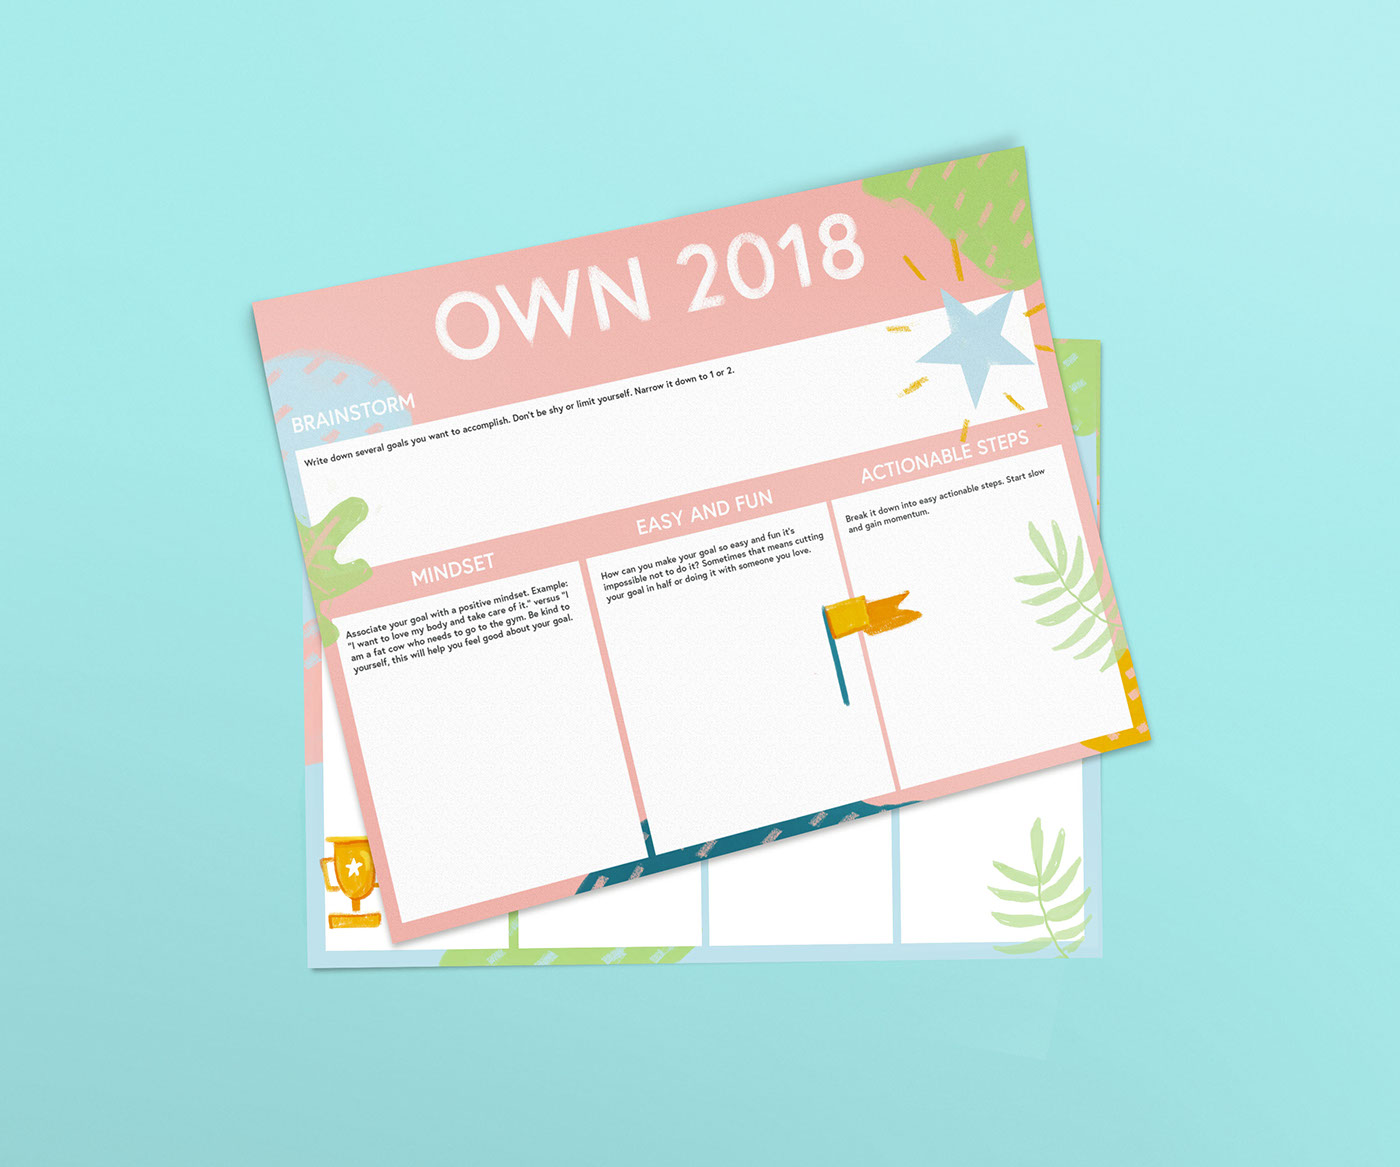 Own 2018 Goal Planning Worksheets on Behance